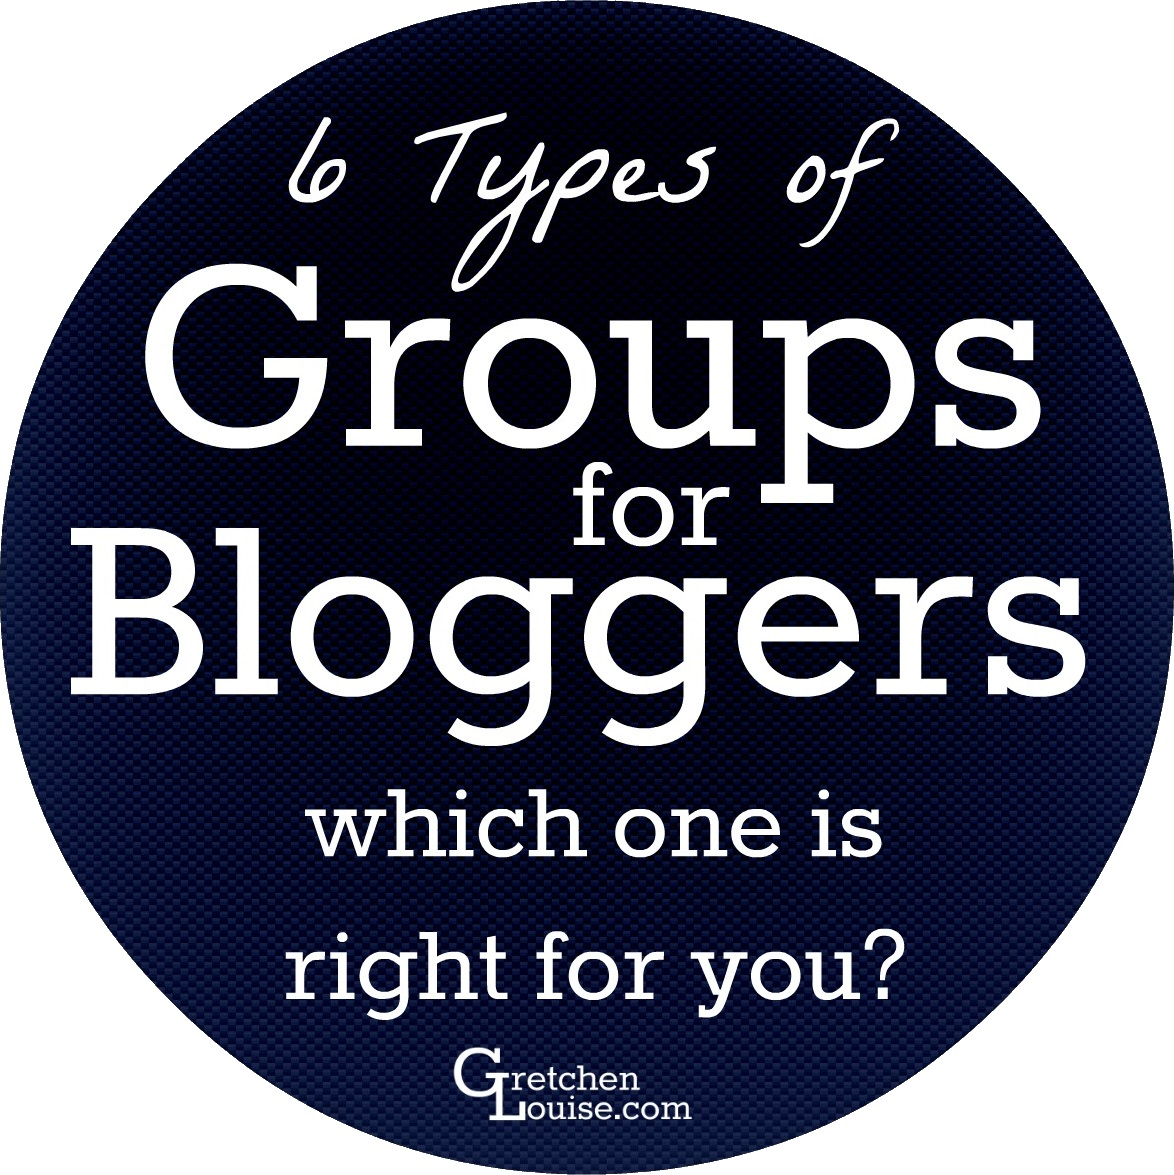 6 Types of Groups for Bloggers (which one is right for you?)